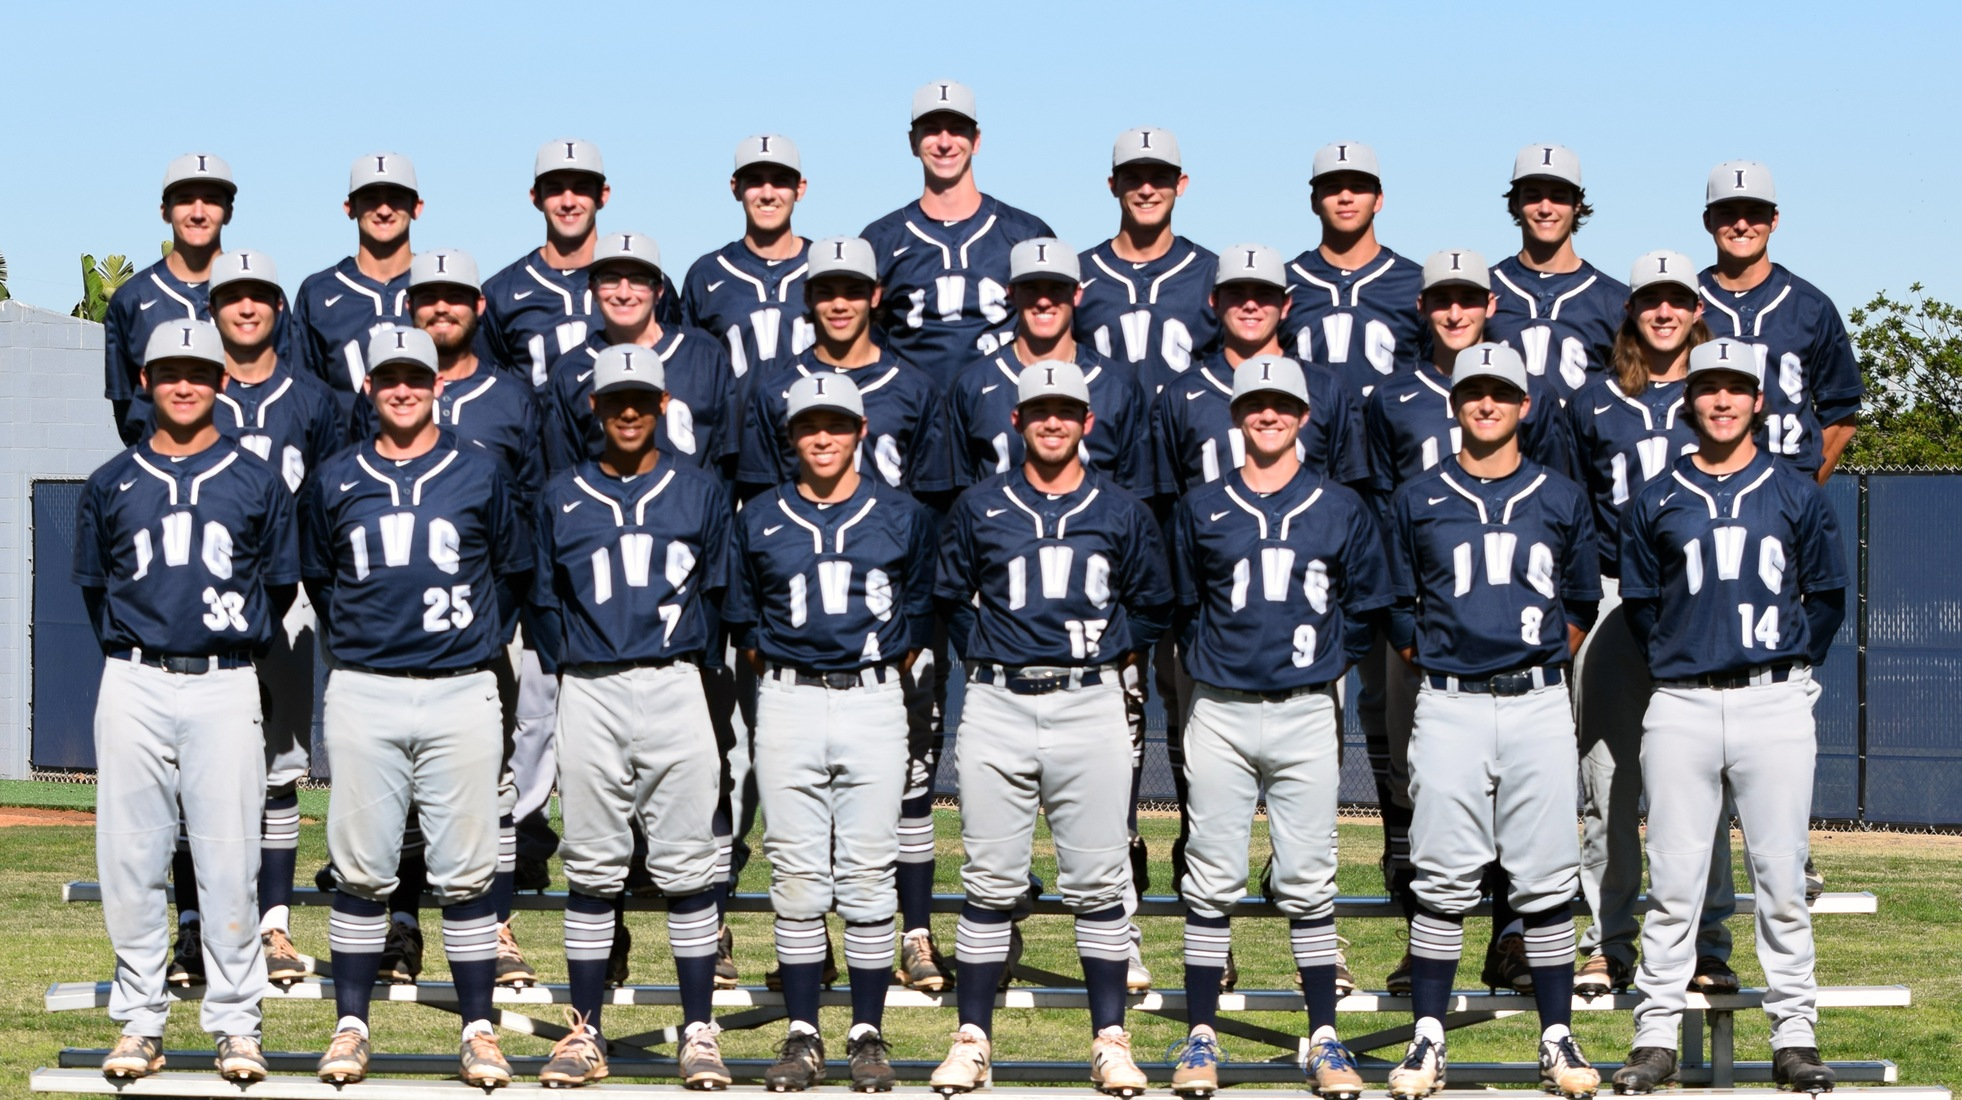 Baseball recognized as Irvine Valley's Scholar Team of the Year